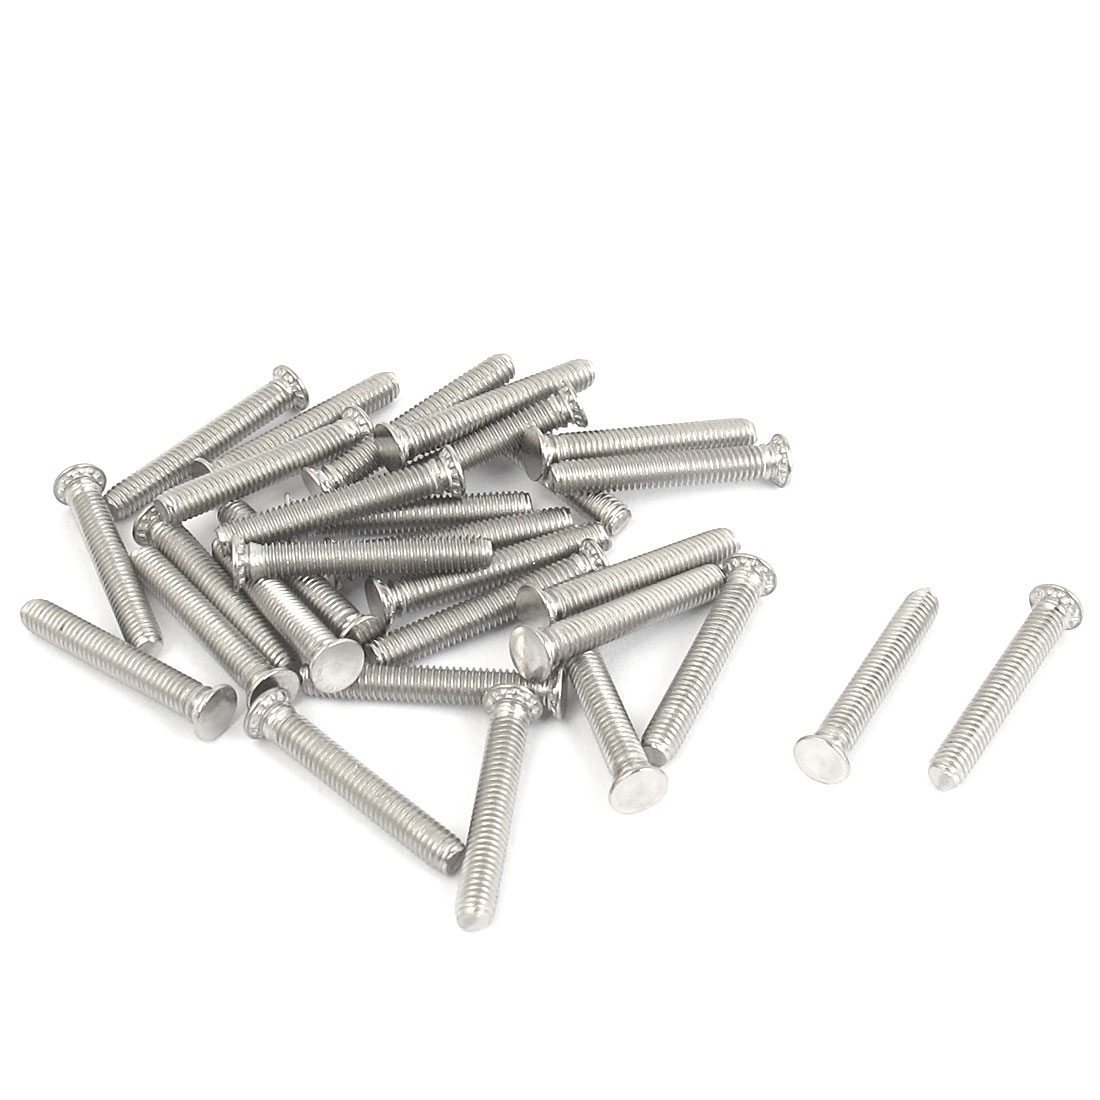 M3x20mm Flush Head Stainless Steel Self Clinching Threaded Studs Fastener 30pcs